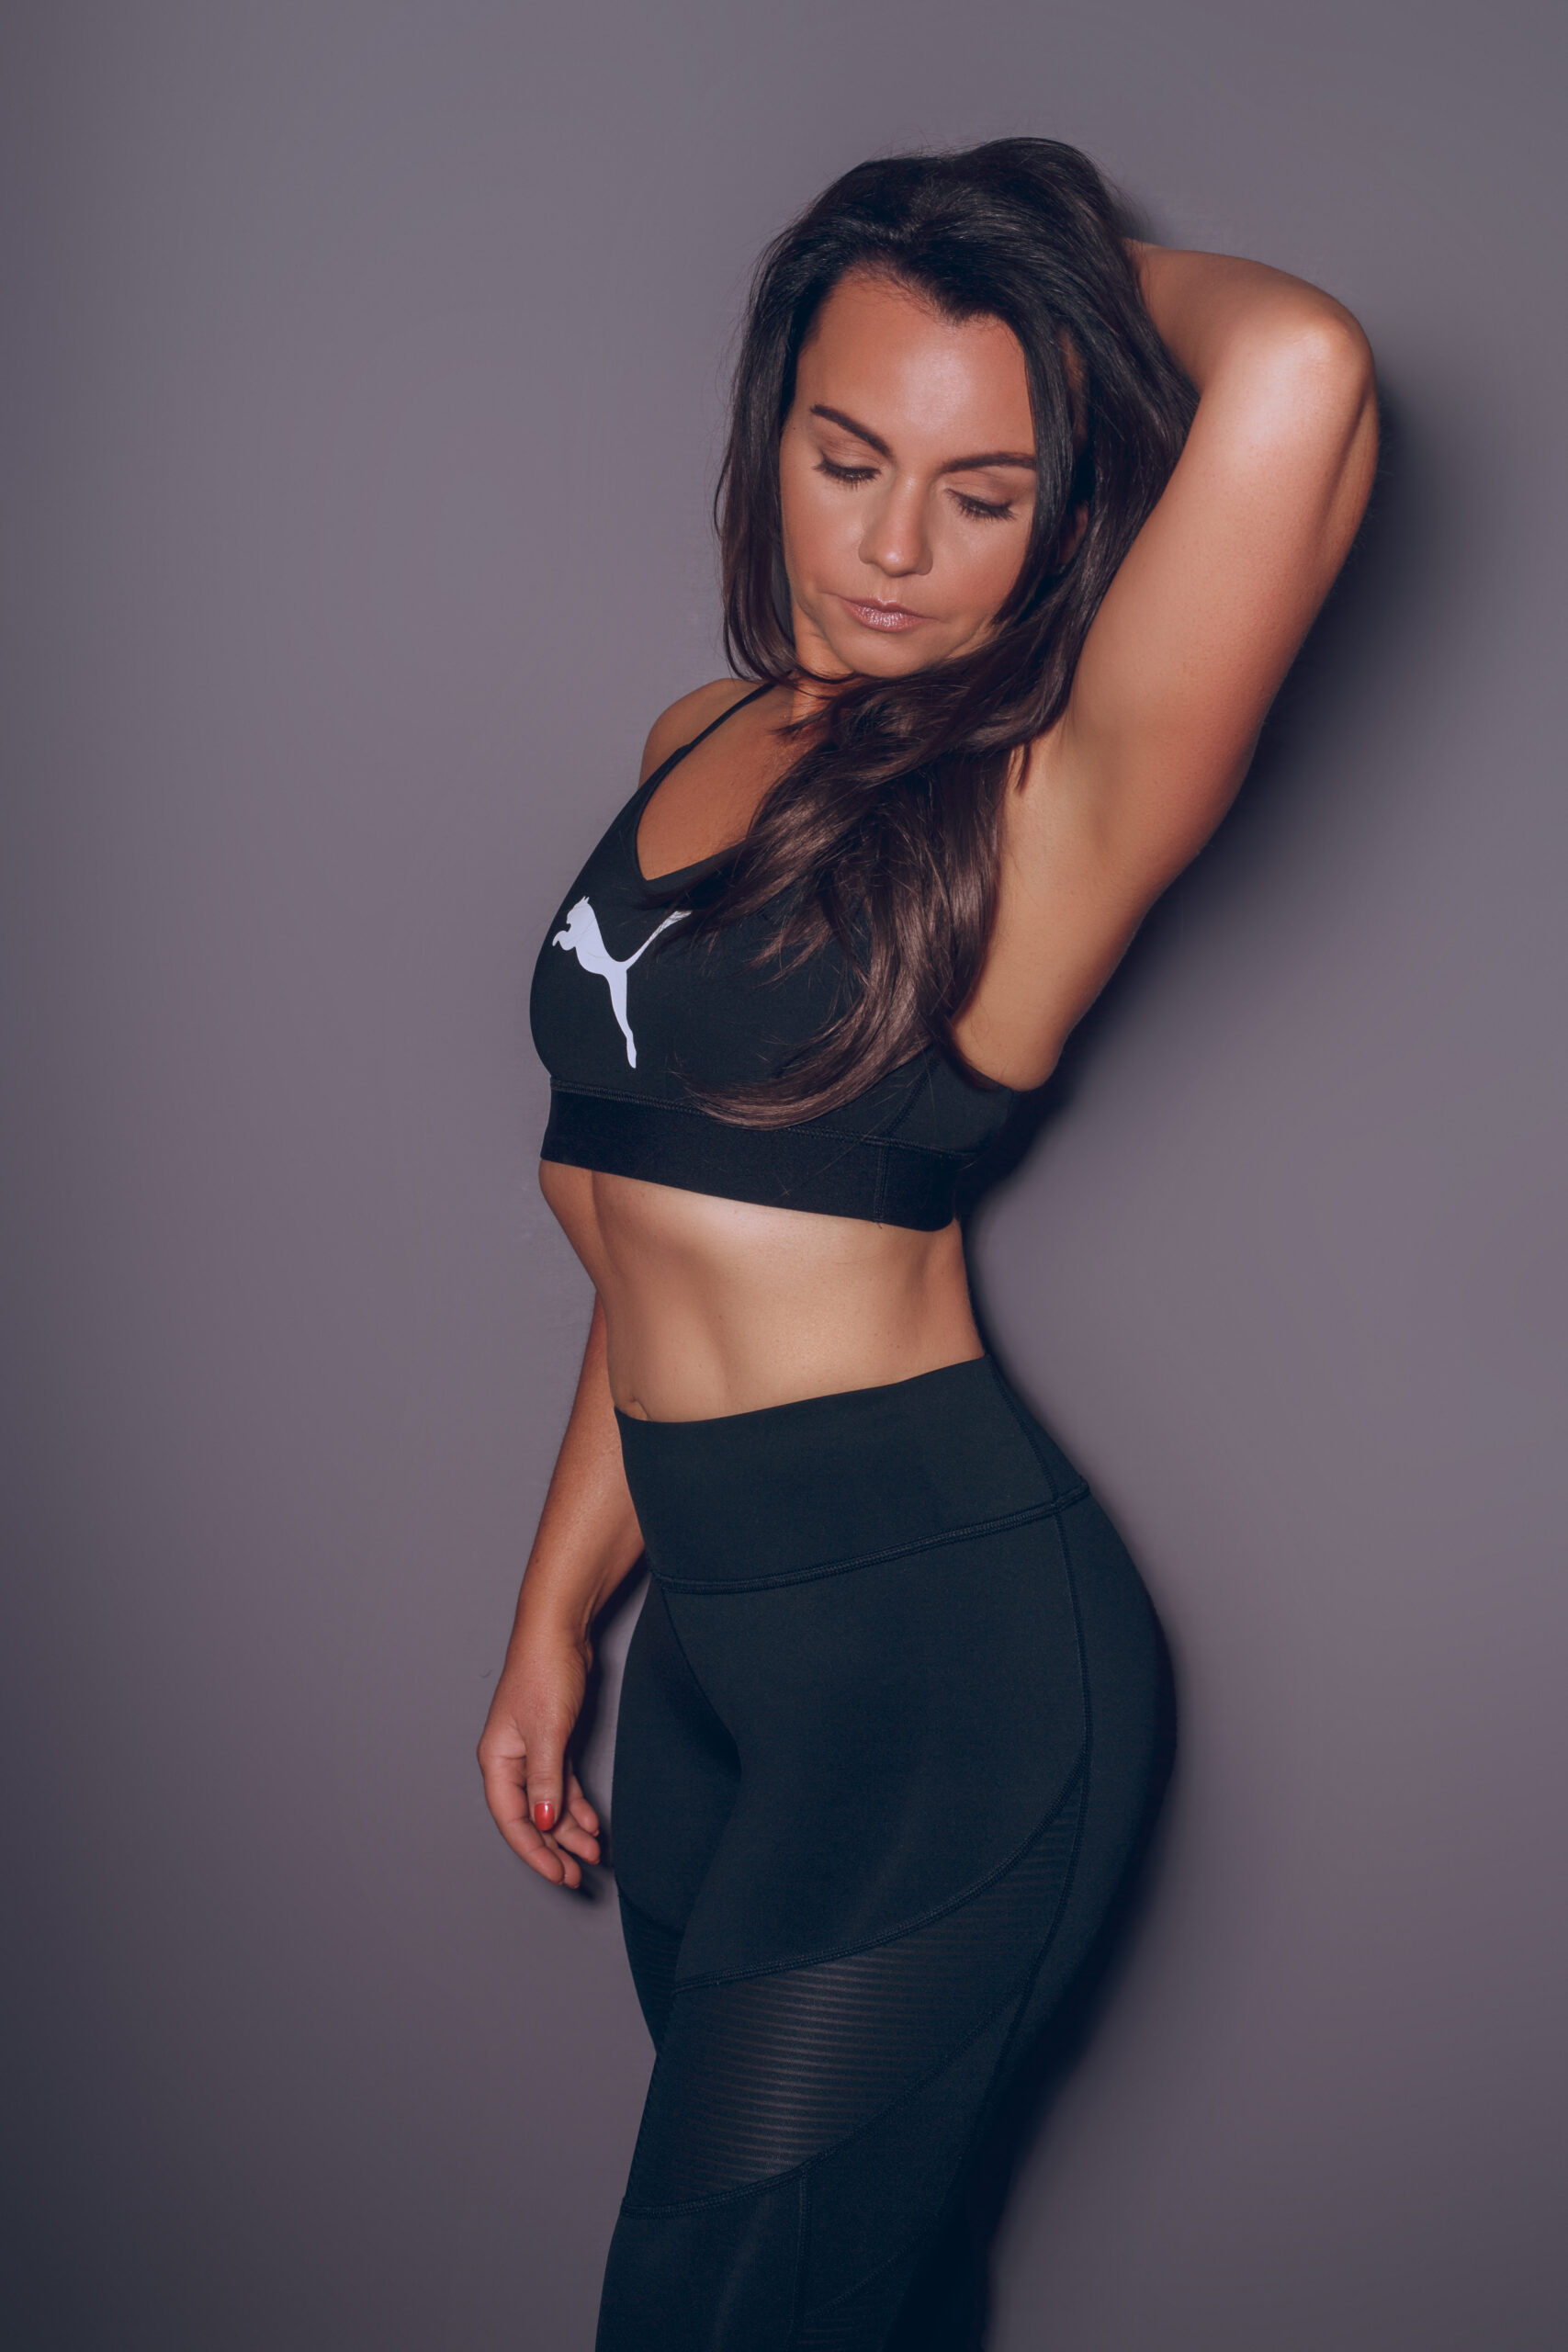 Lisa Little, owner of From The Block Fitness in Southport